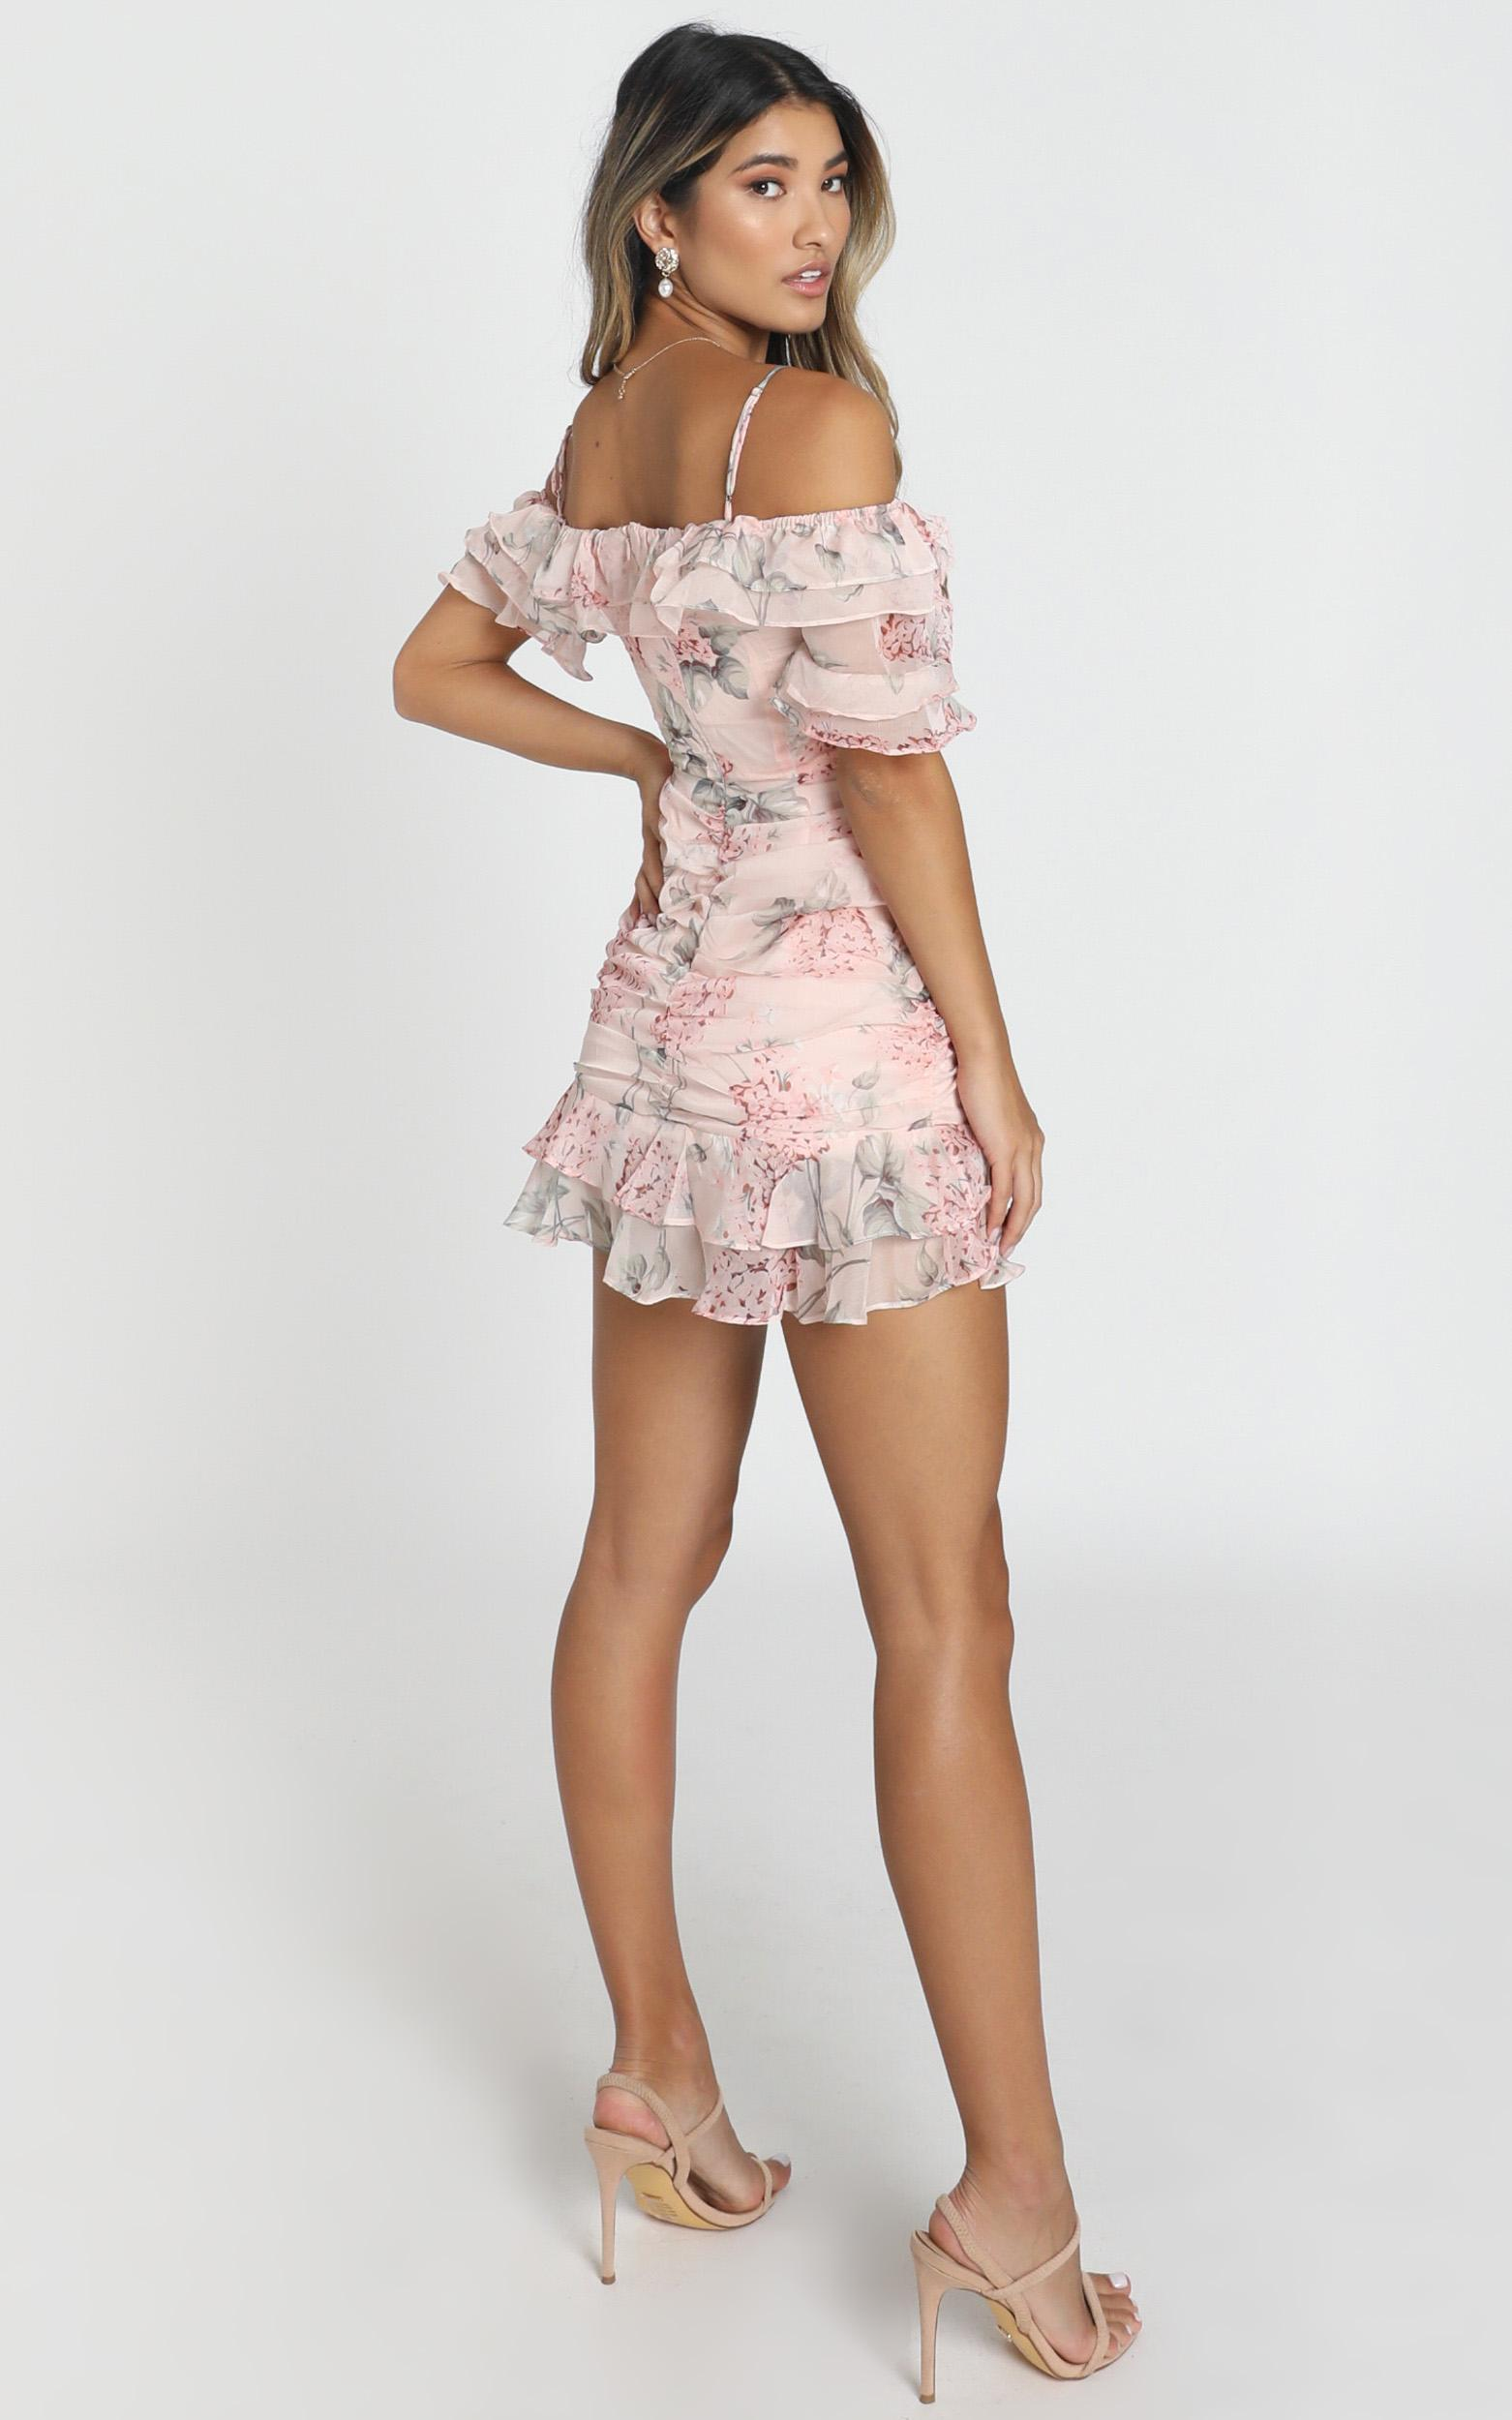 Queen Of The Prairie Dress In Blush Floral - 14 (XL), Blush, hi-res image number null